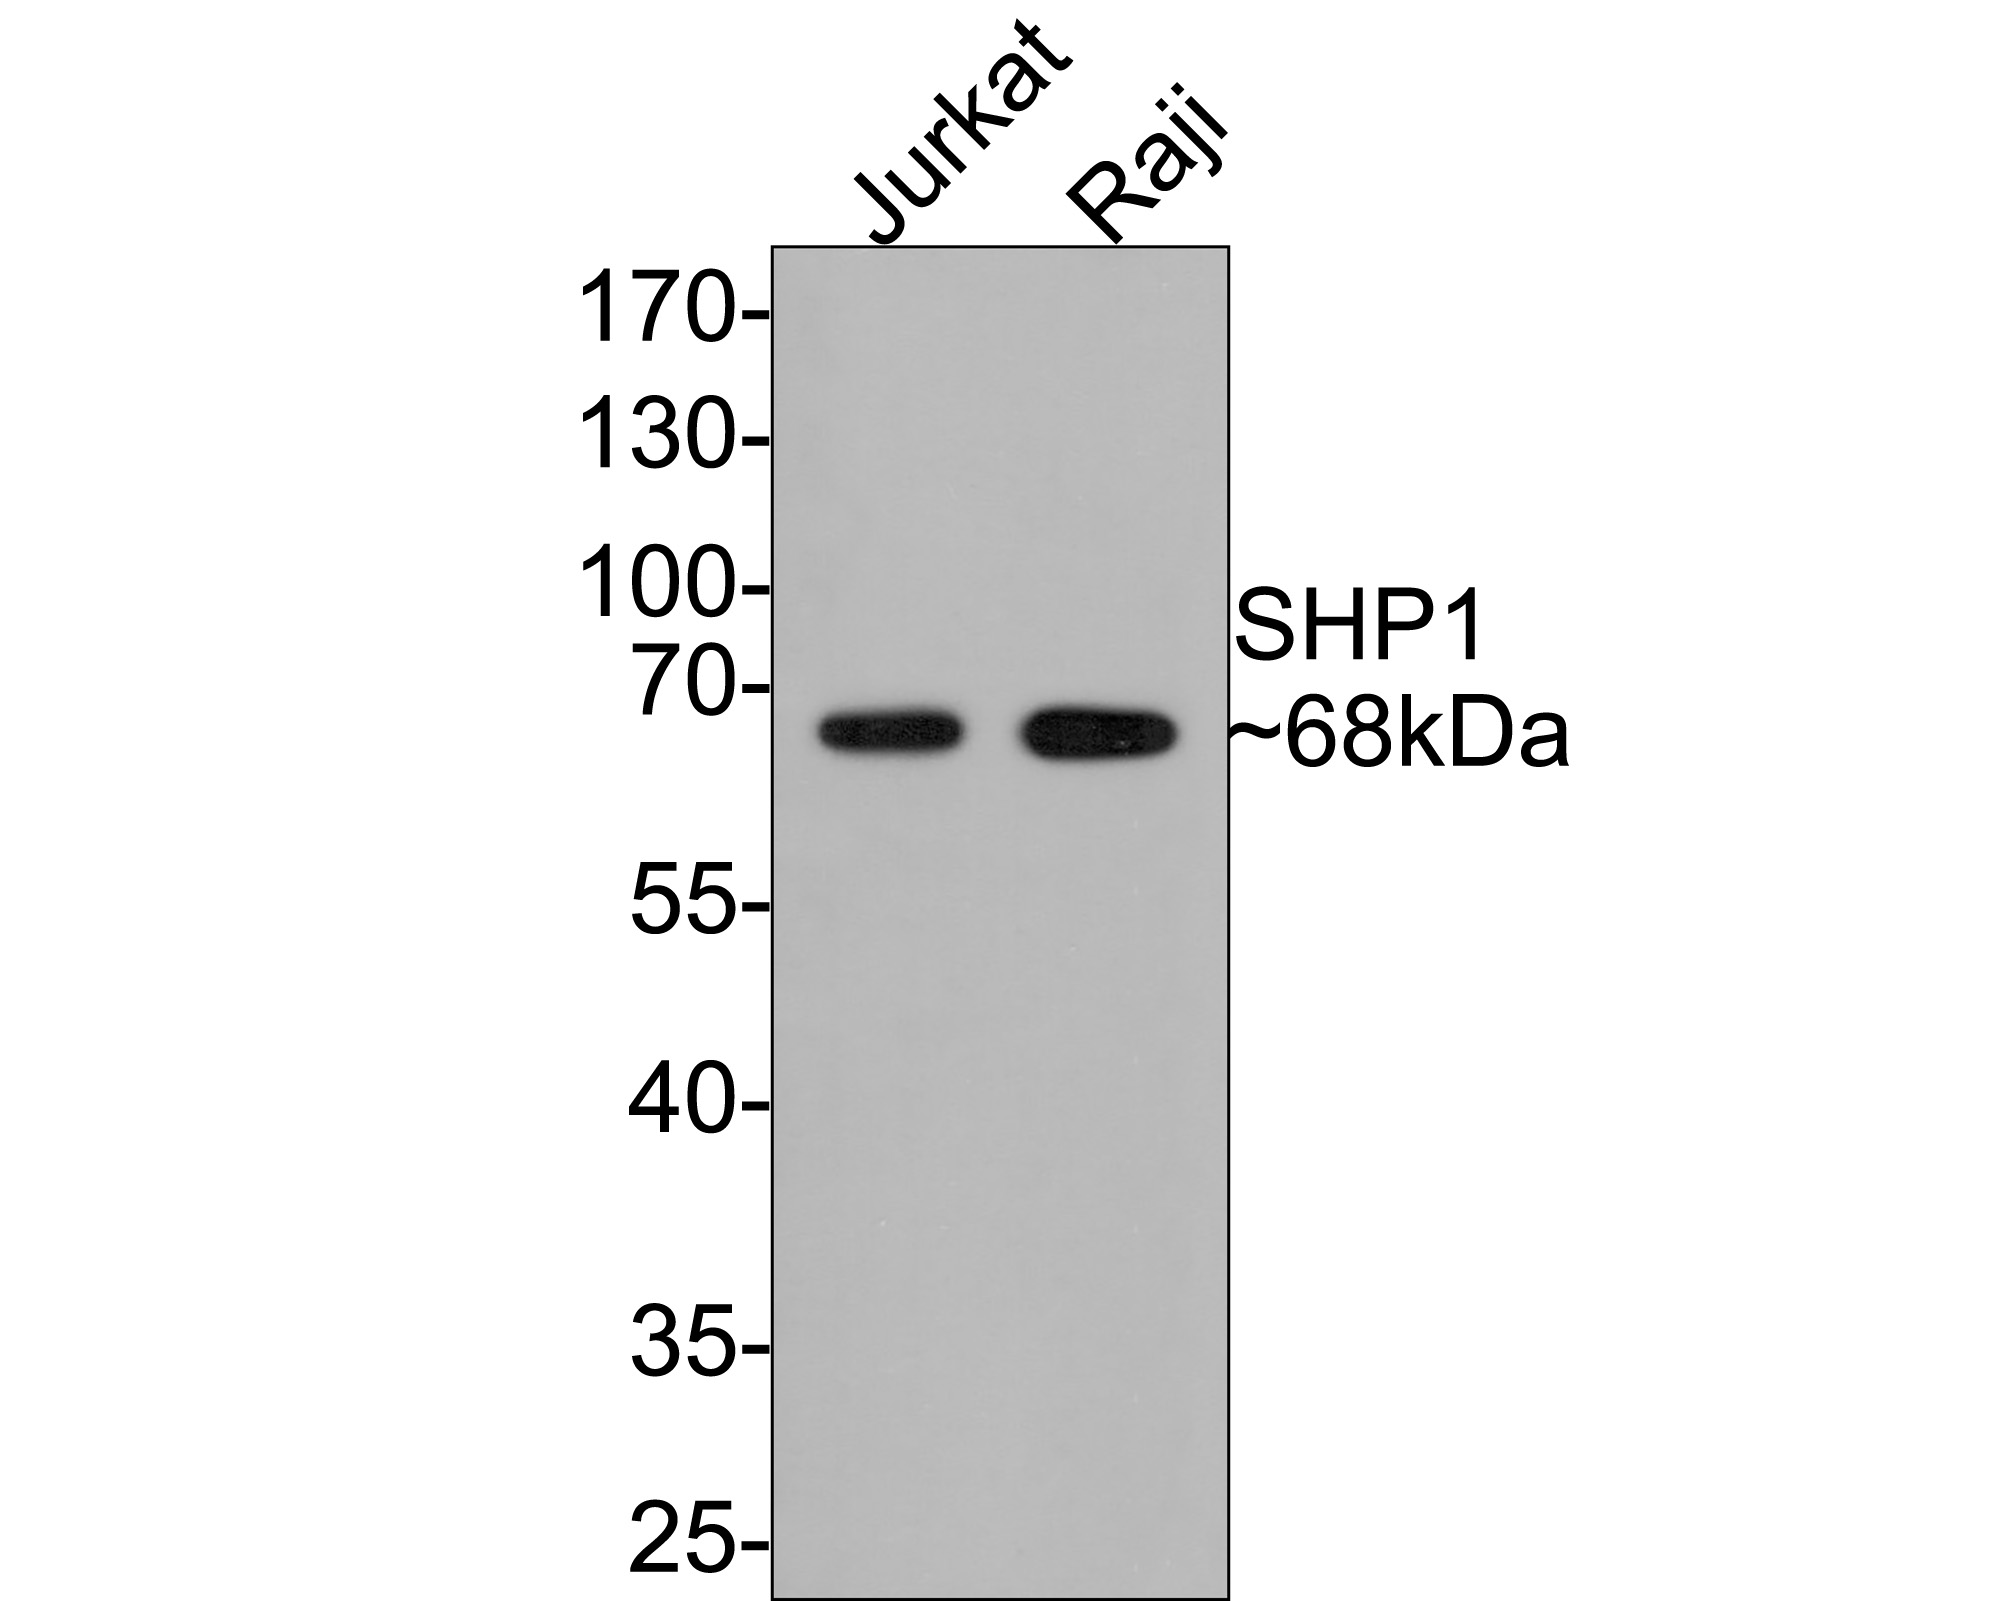 Western blot analysis of SHP1 on different lysates. Proteins were transferred to a PVDF membrane and blocked with 5% BSA in PBS for 1 hour at room temperature. The primary antibody (ET1602-19, 1/500) was used in 5% BSA at room temperature for 2 hours. Goat Anti-Rabbit IgG - HRP Secondary Antibody (HA1001) at 1:5,000 dilution was used for 1 hour at room temperature.<br />  Positive control: <br />  Lane 1: Raji cell lysate<br />  Lane 2: Jurkat cell lysate